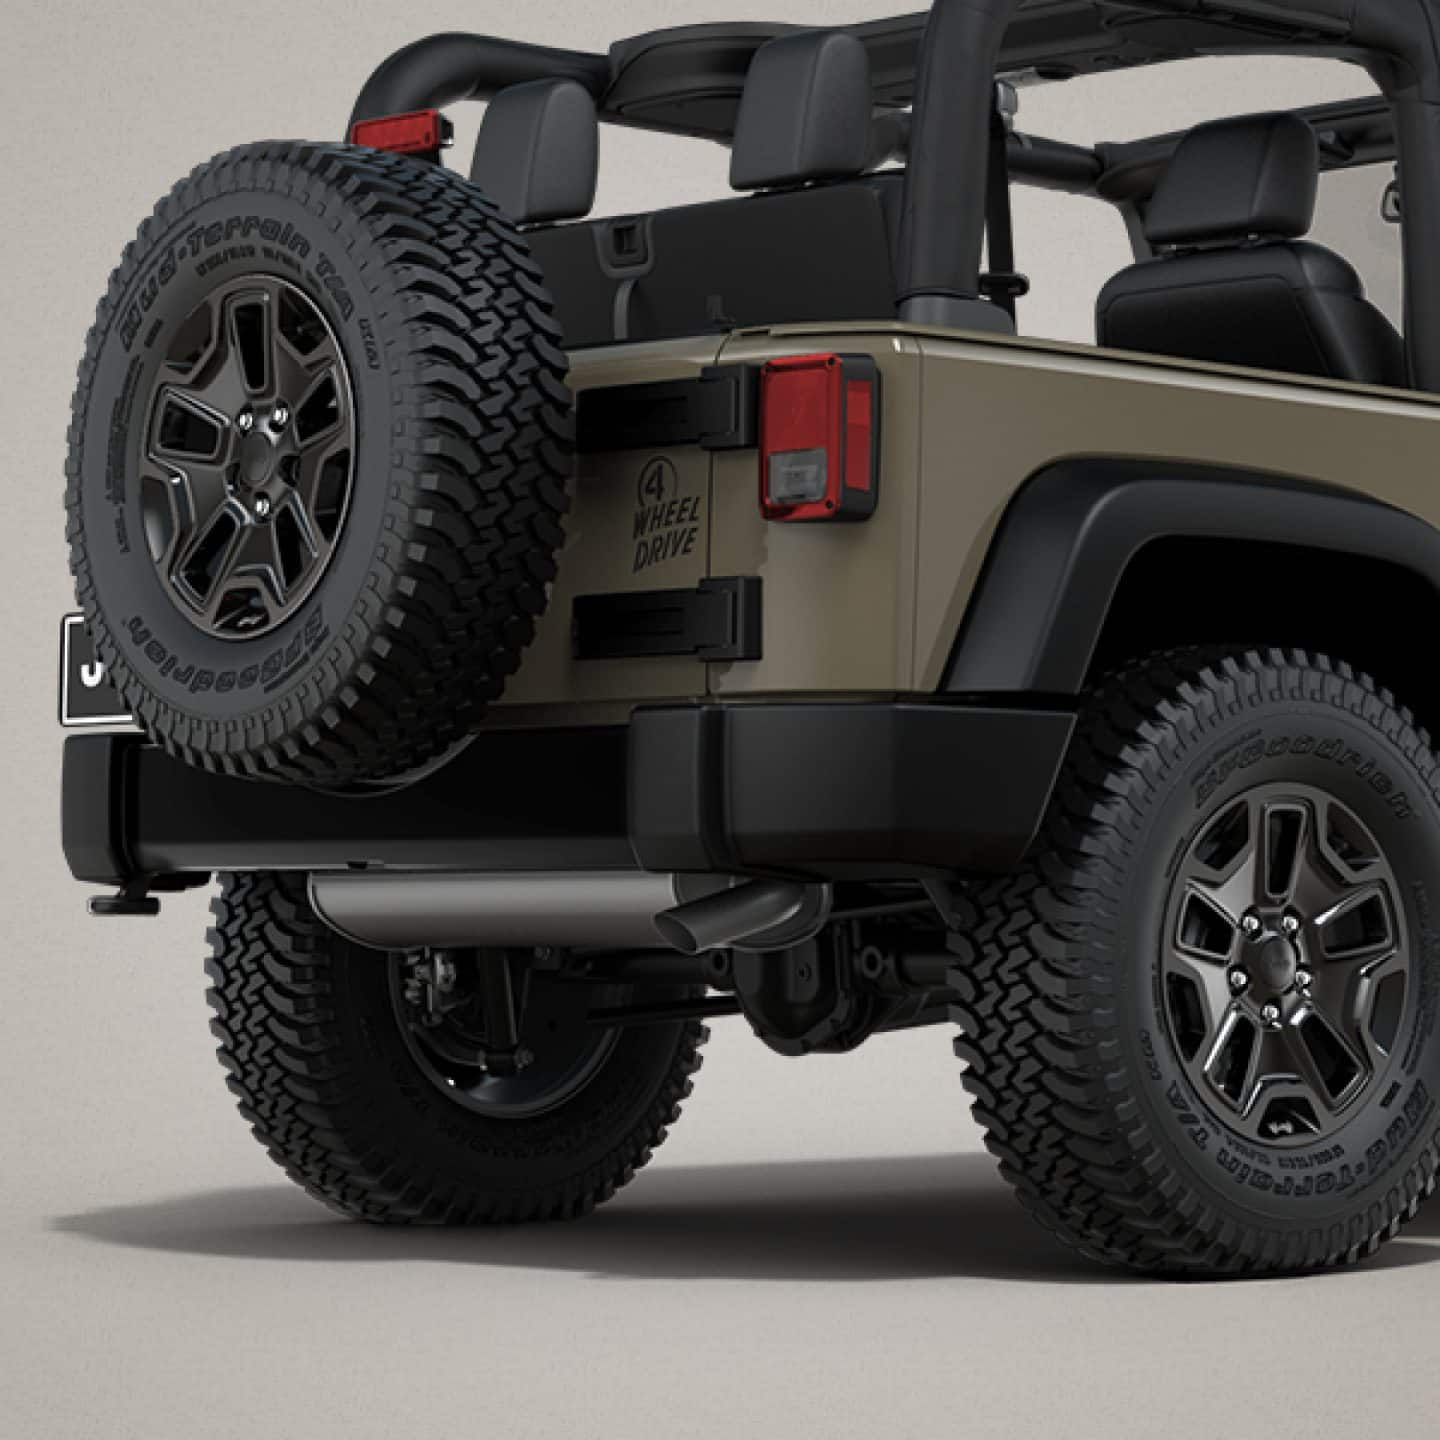 pakwheels any general forums price discussion for t model willys willy check jeep sale